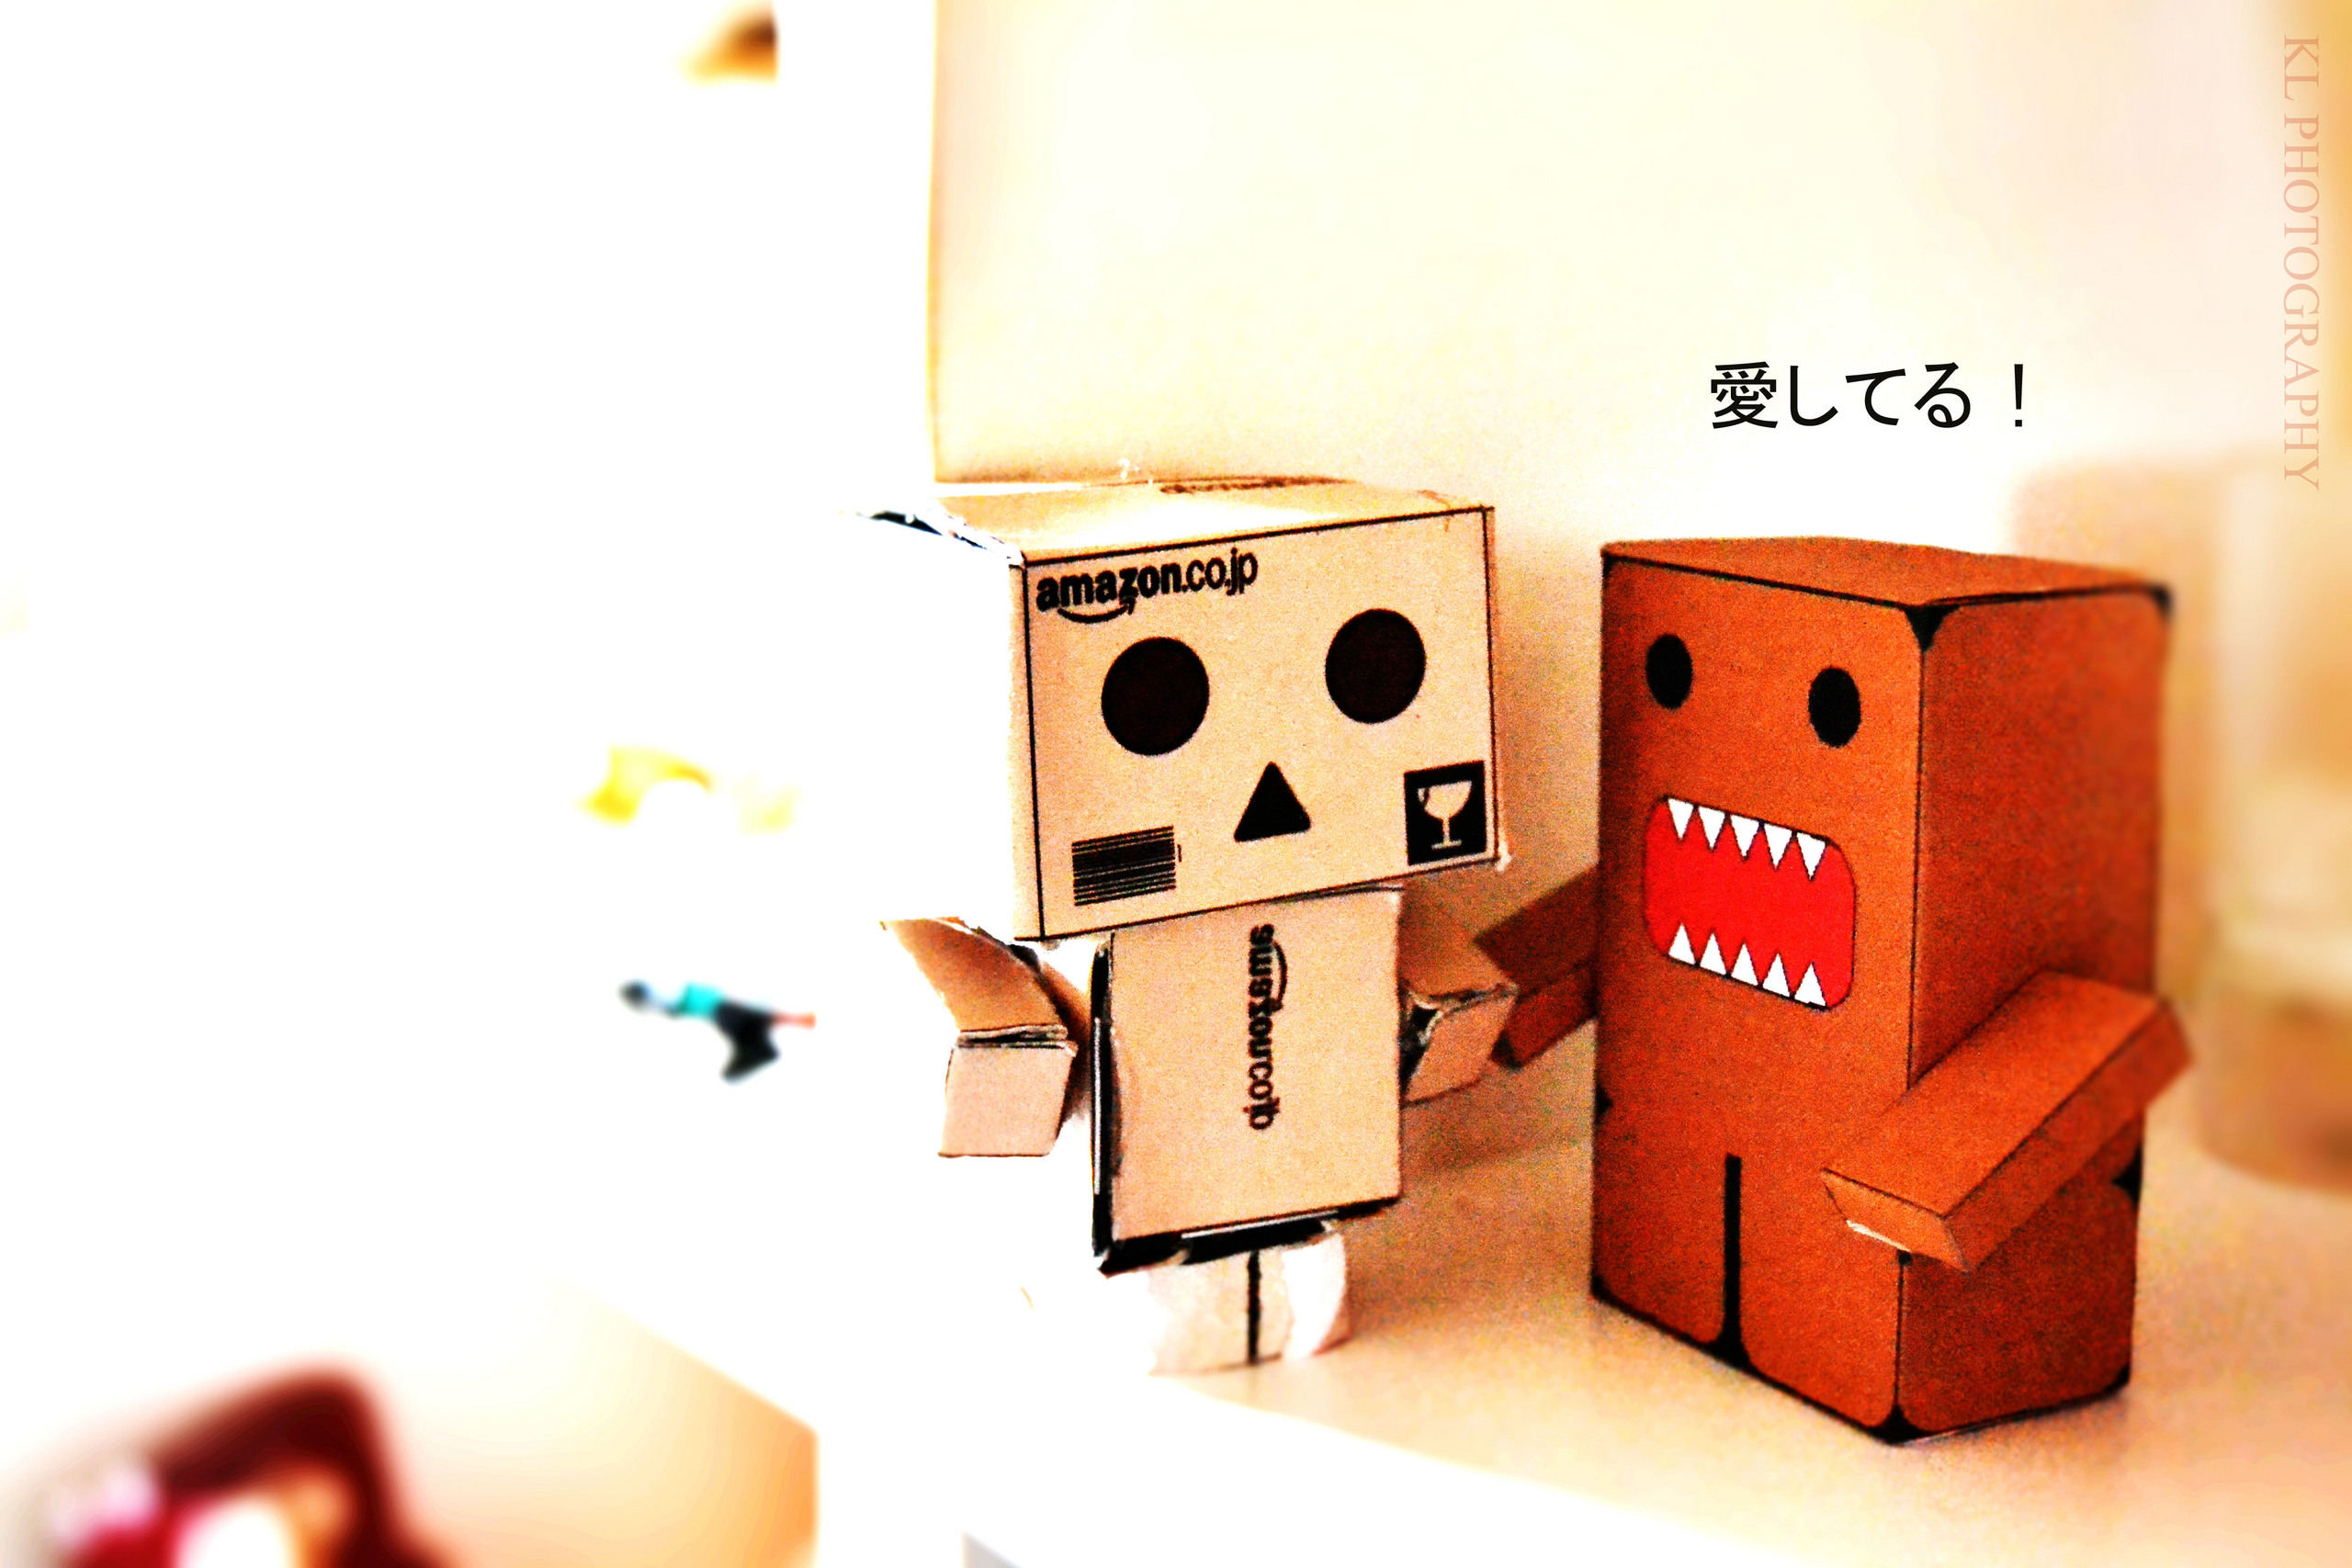 cardboard robot wallpaper hd - photo #36